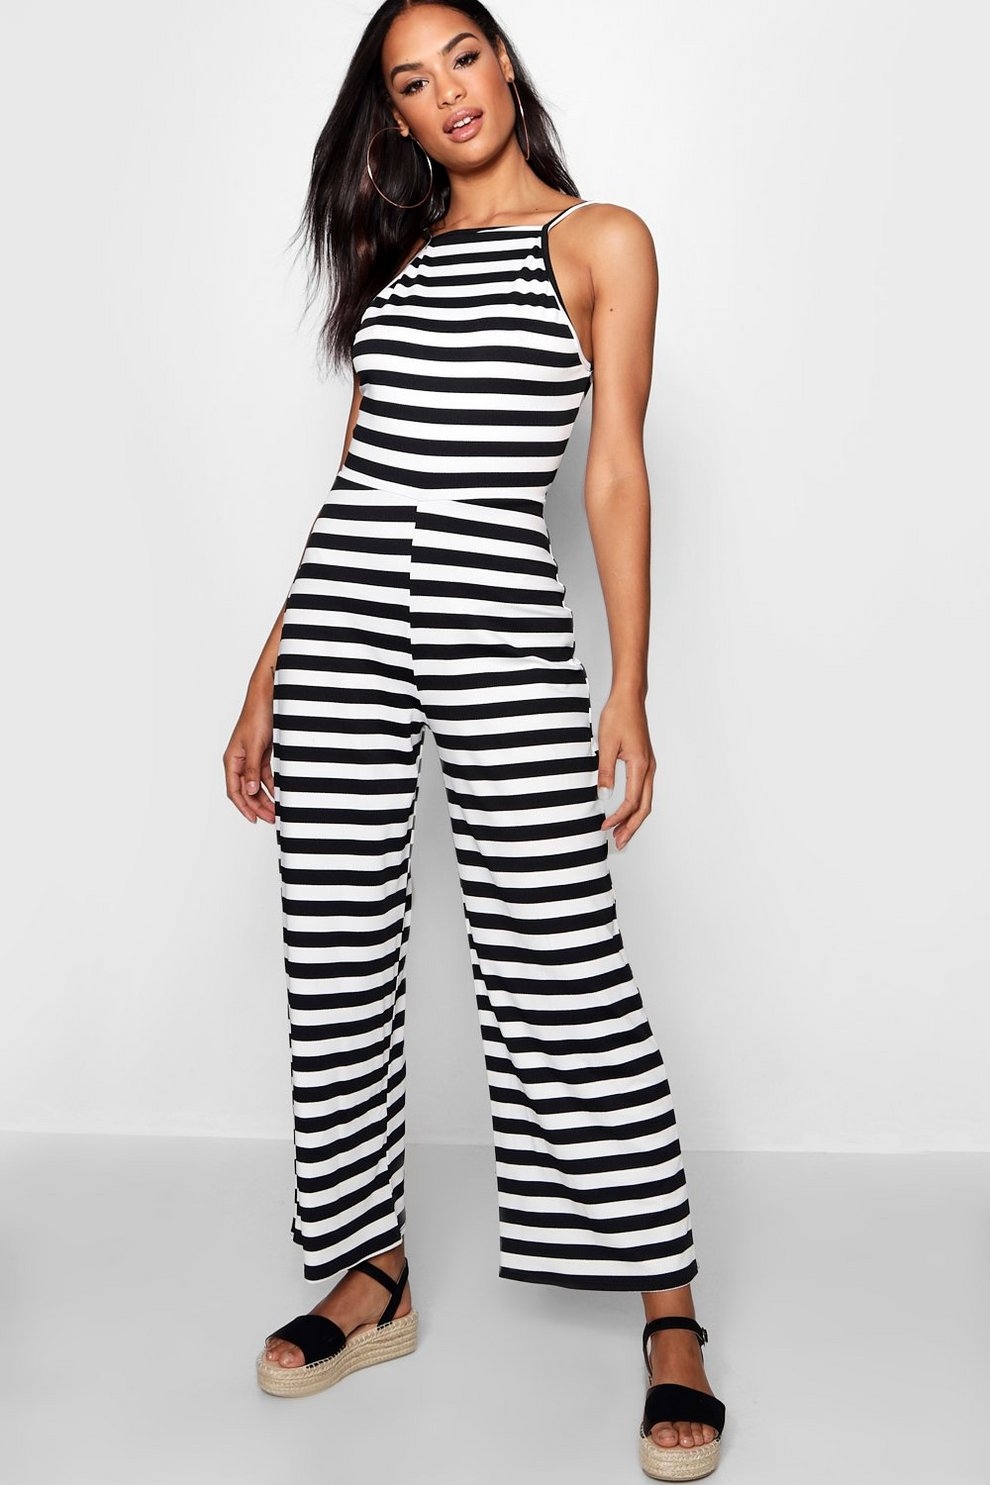 Boohoo Tall Stripe Culottes Free Shipping Fast Delivery Prices Cheap Online isxQar4eGL